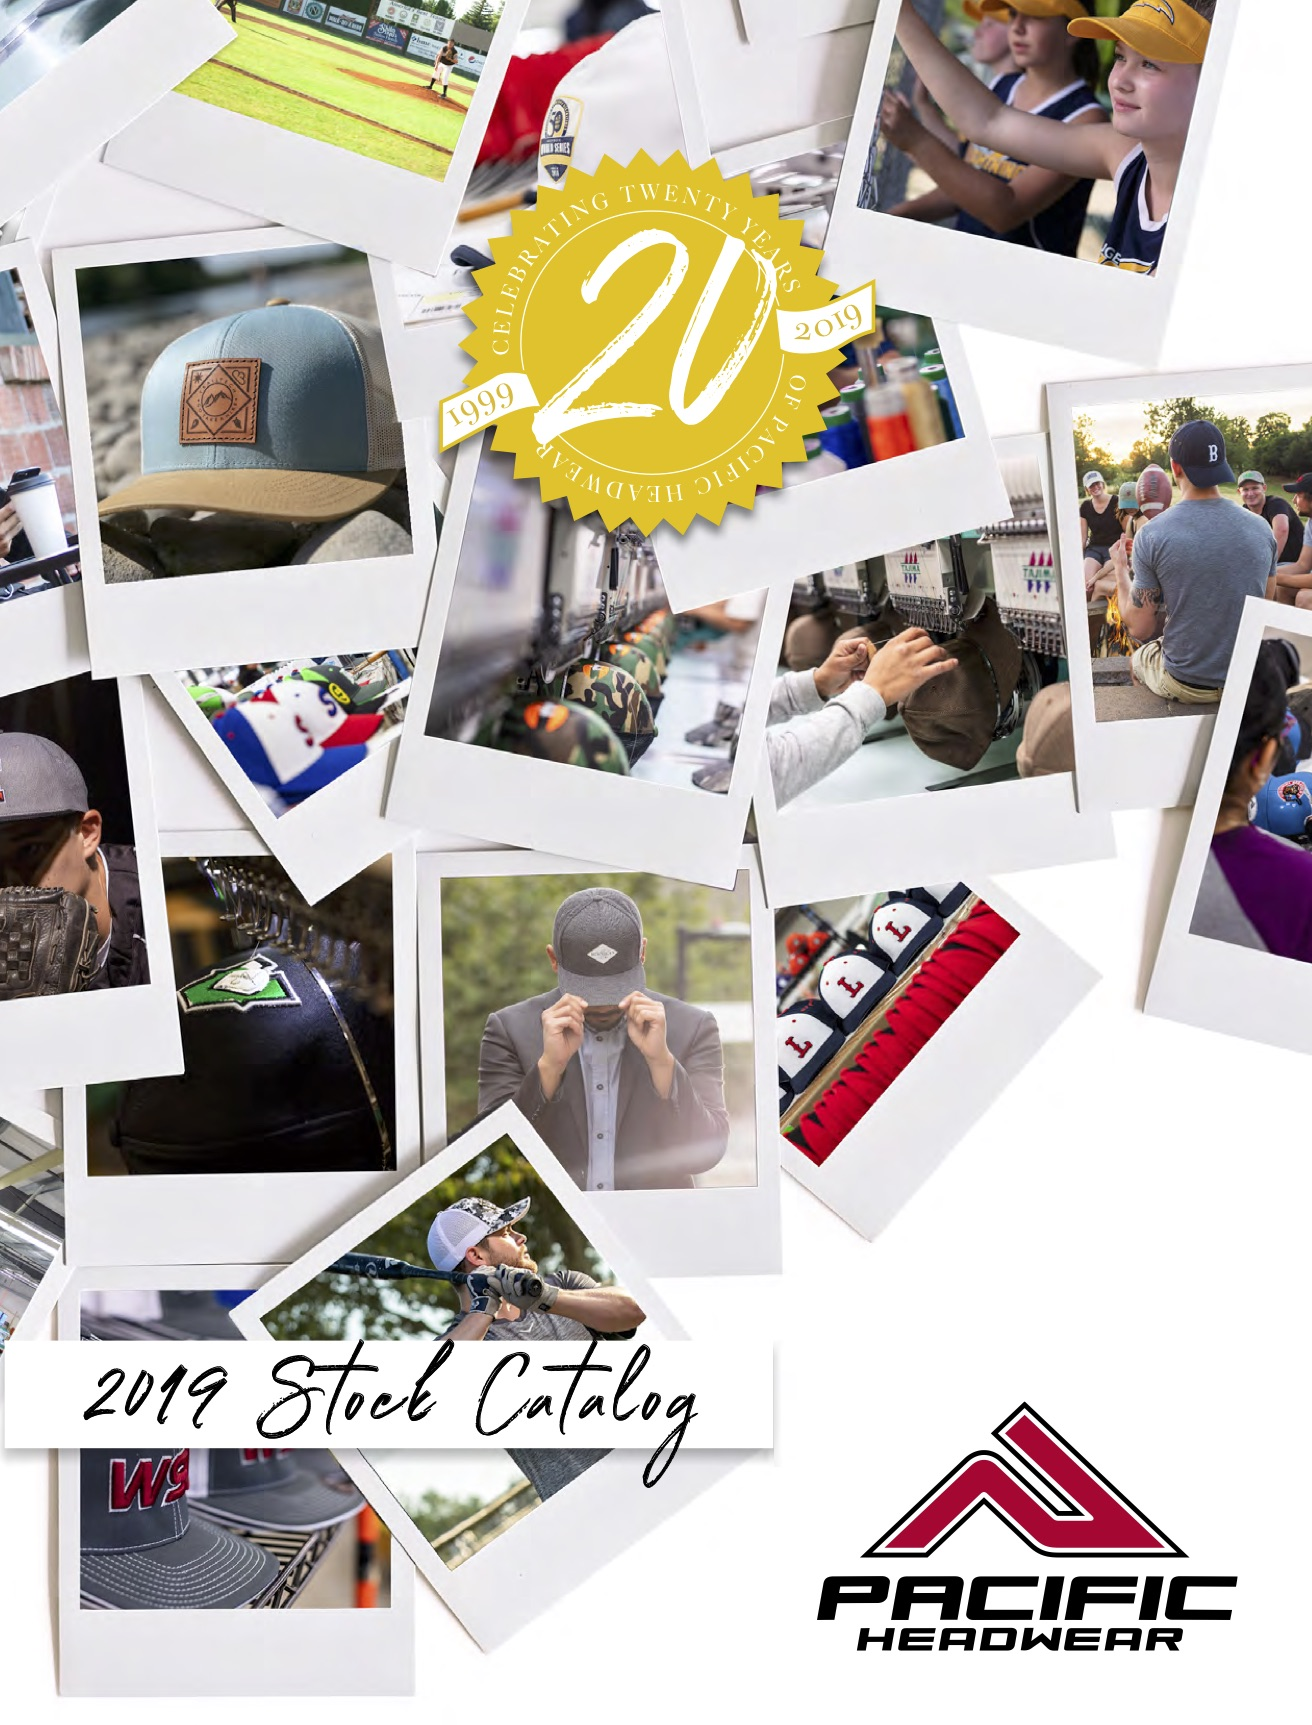 Pacific Headwear 2019 Stock Catalog – PacWest Sports